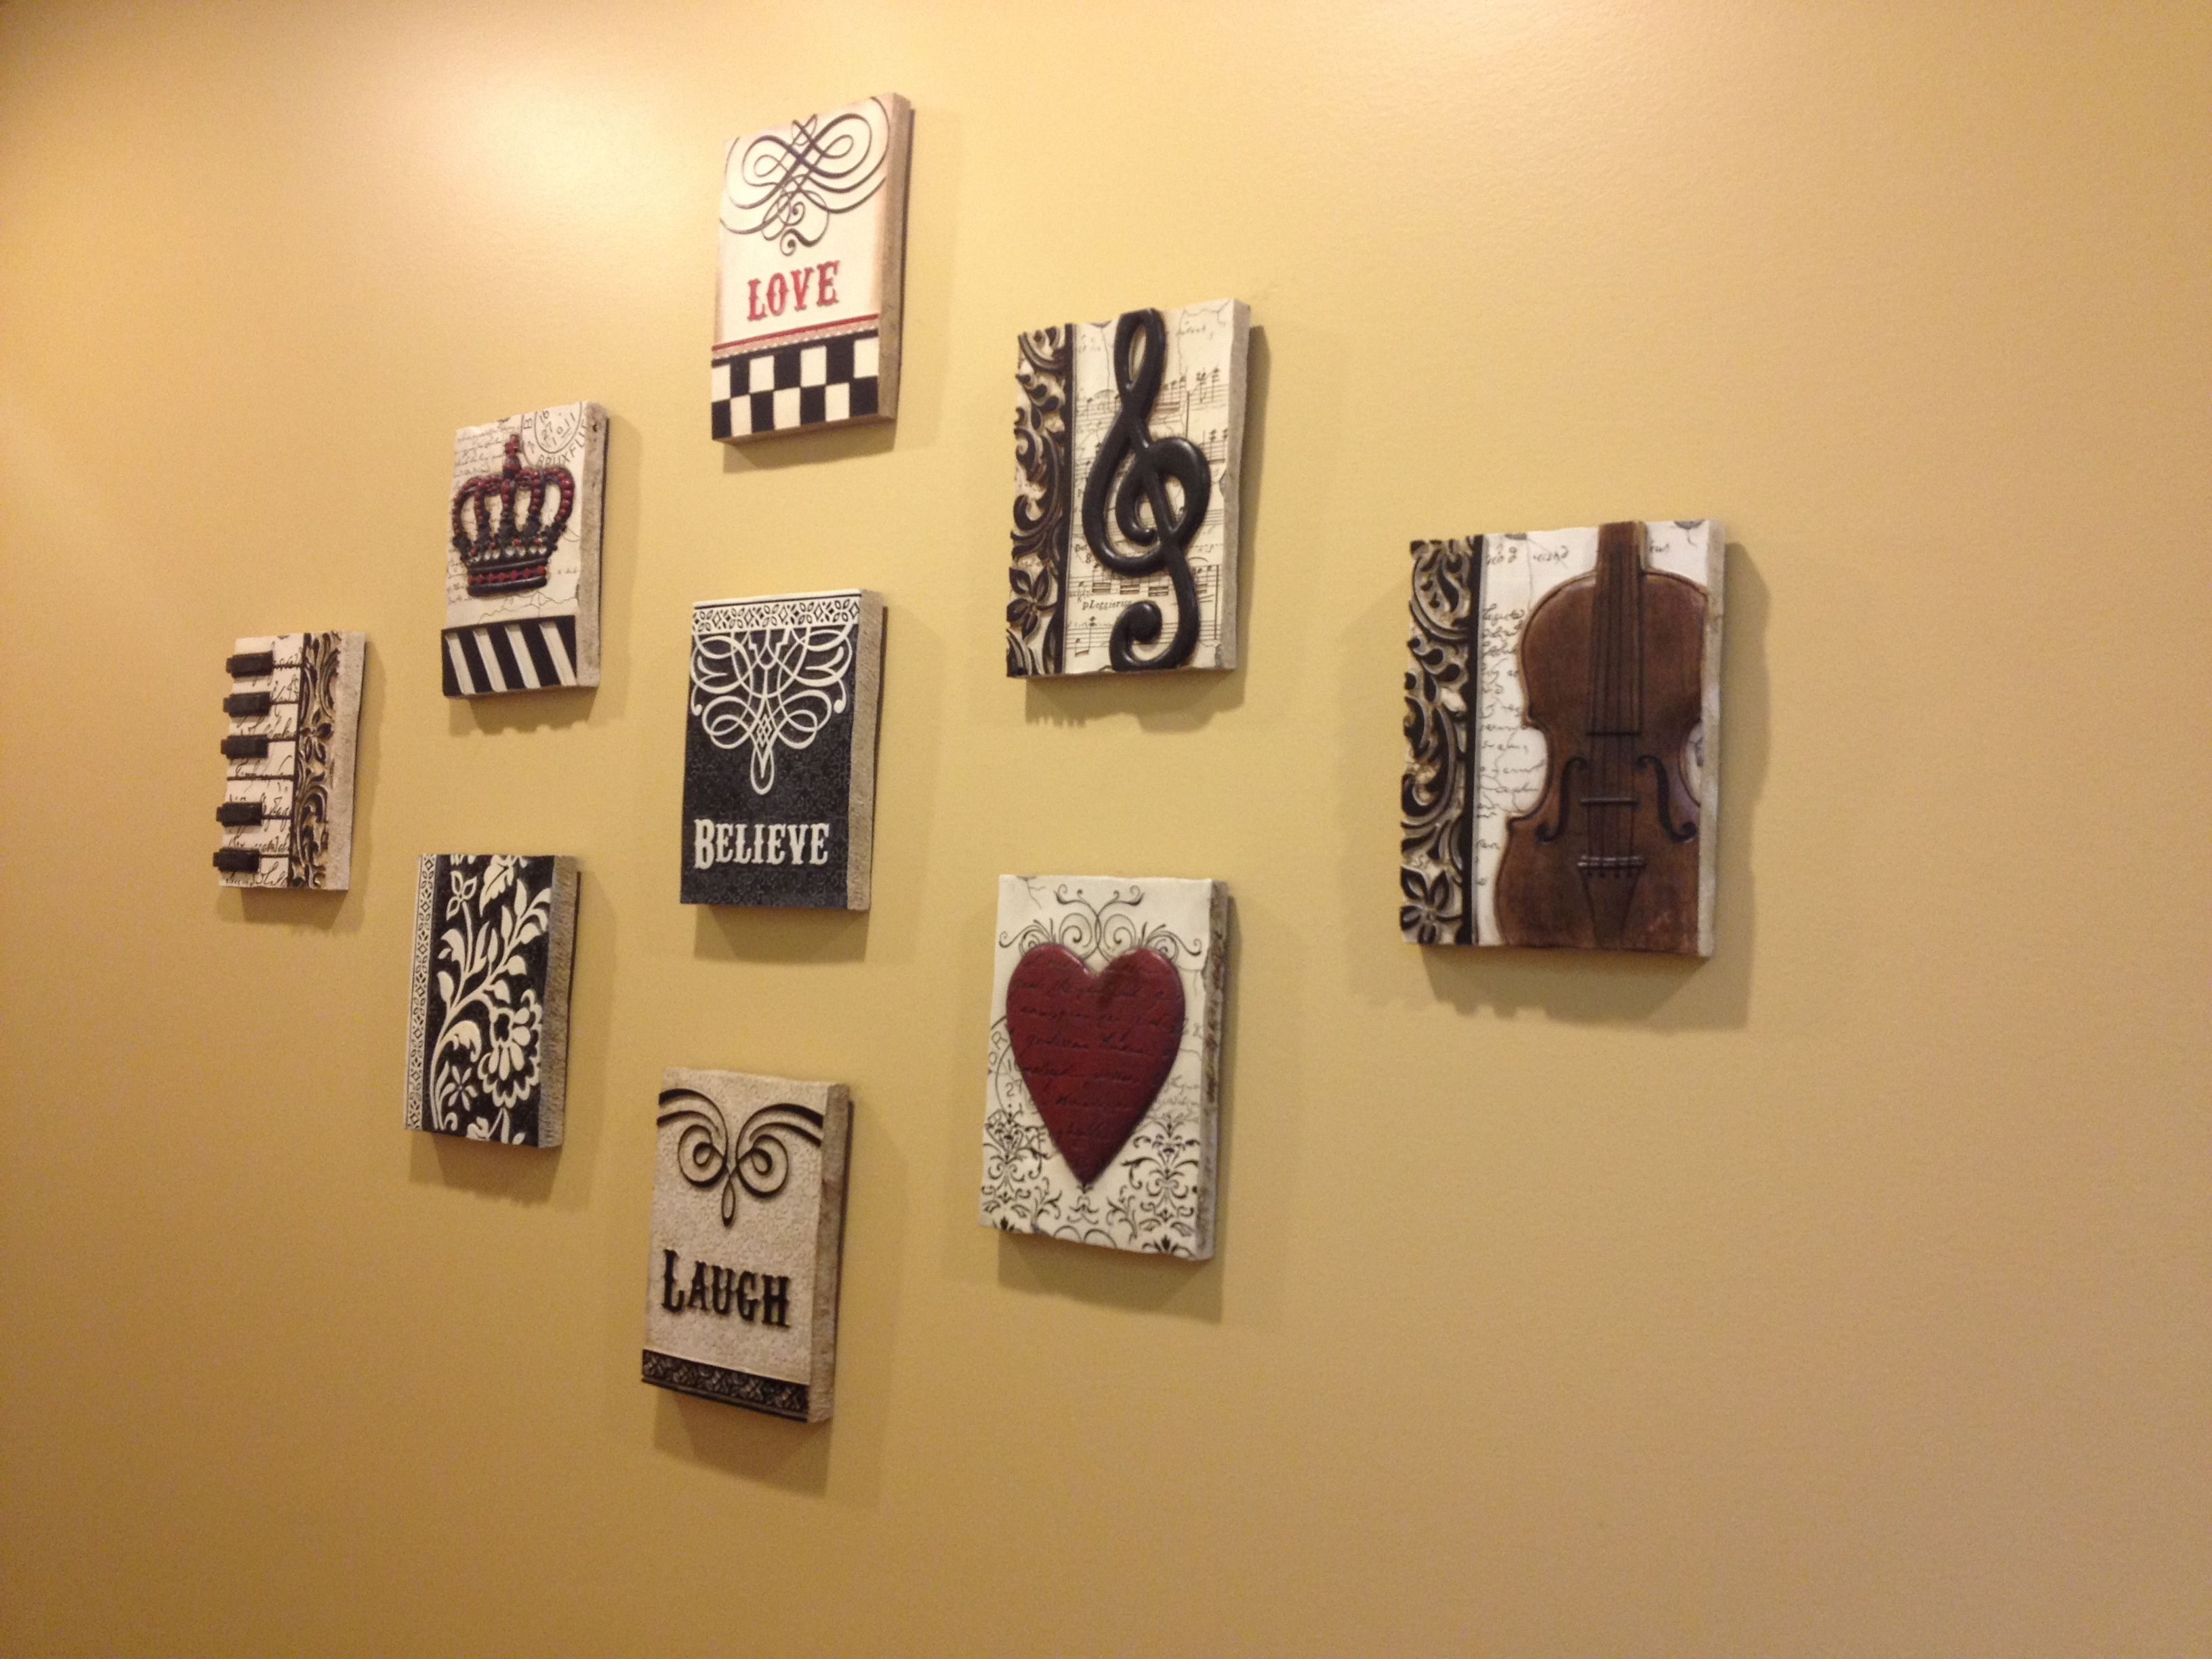 Wall decor by New View Gifts & Accessories | Home & Style ...